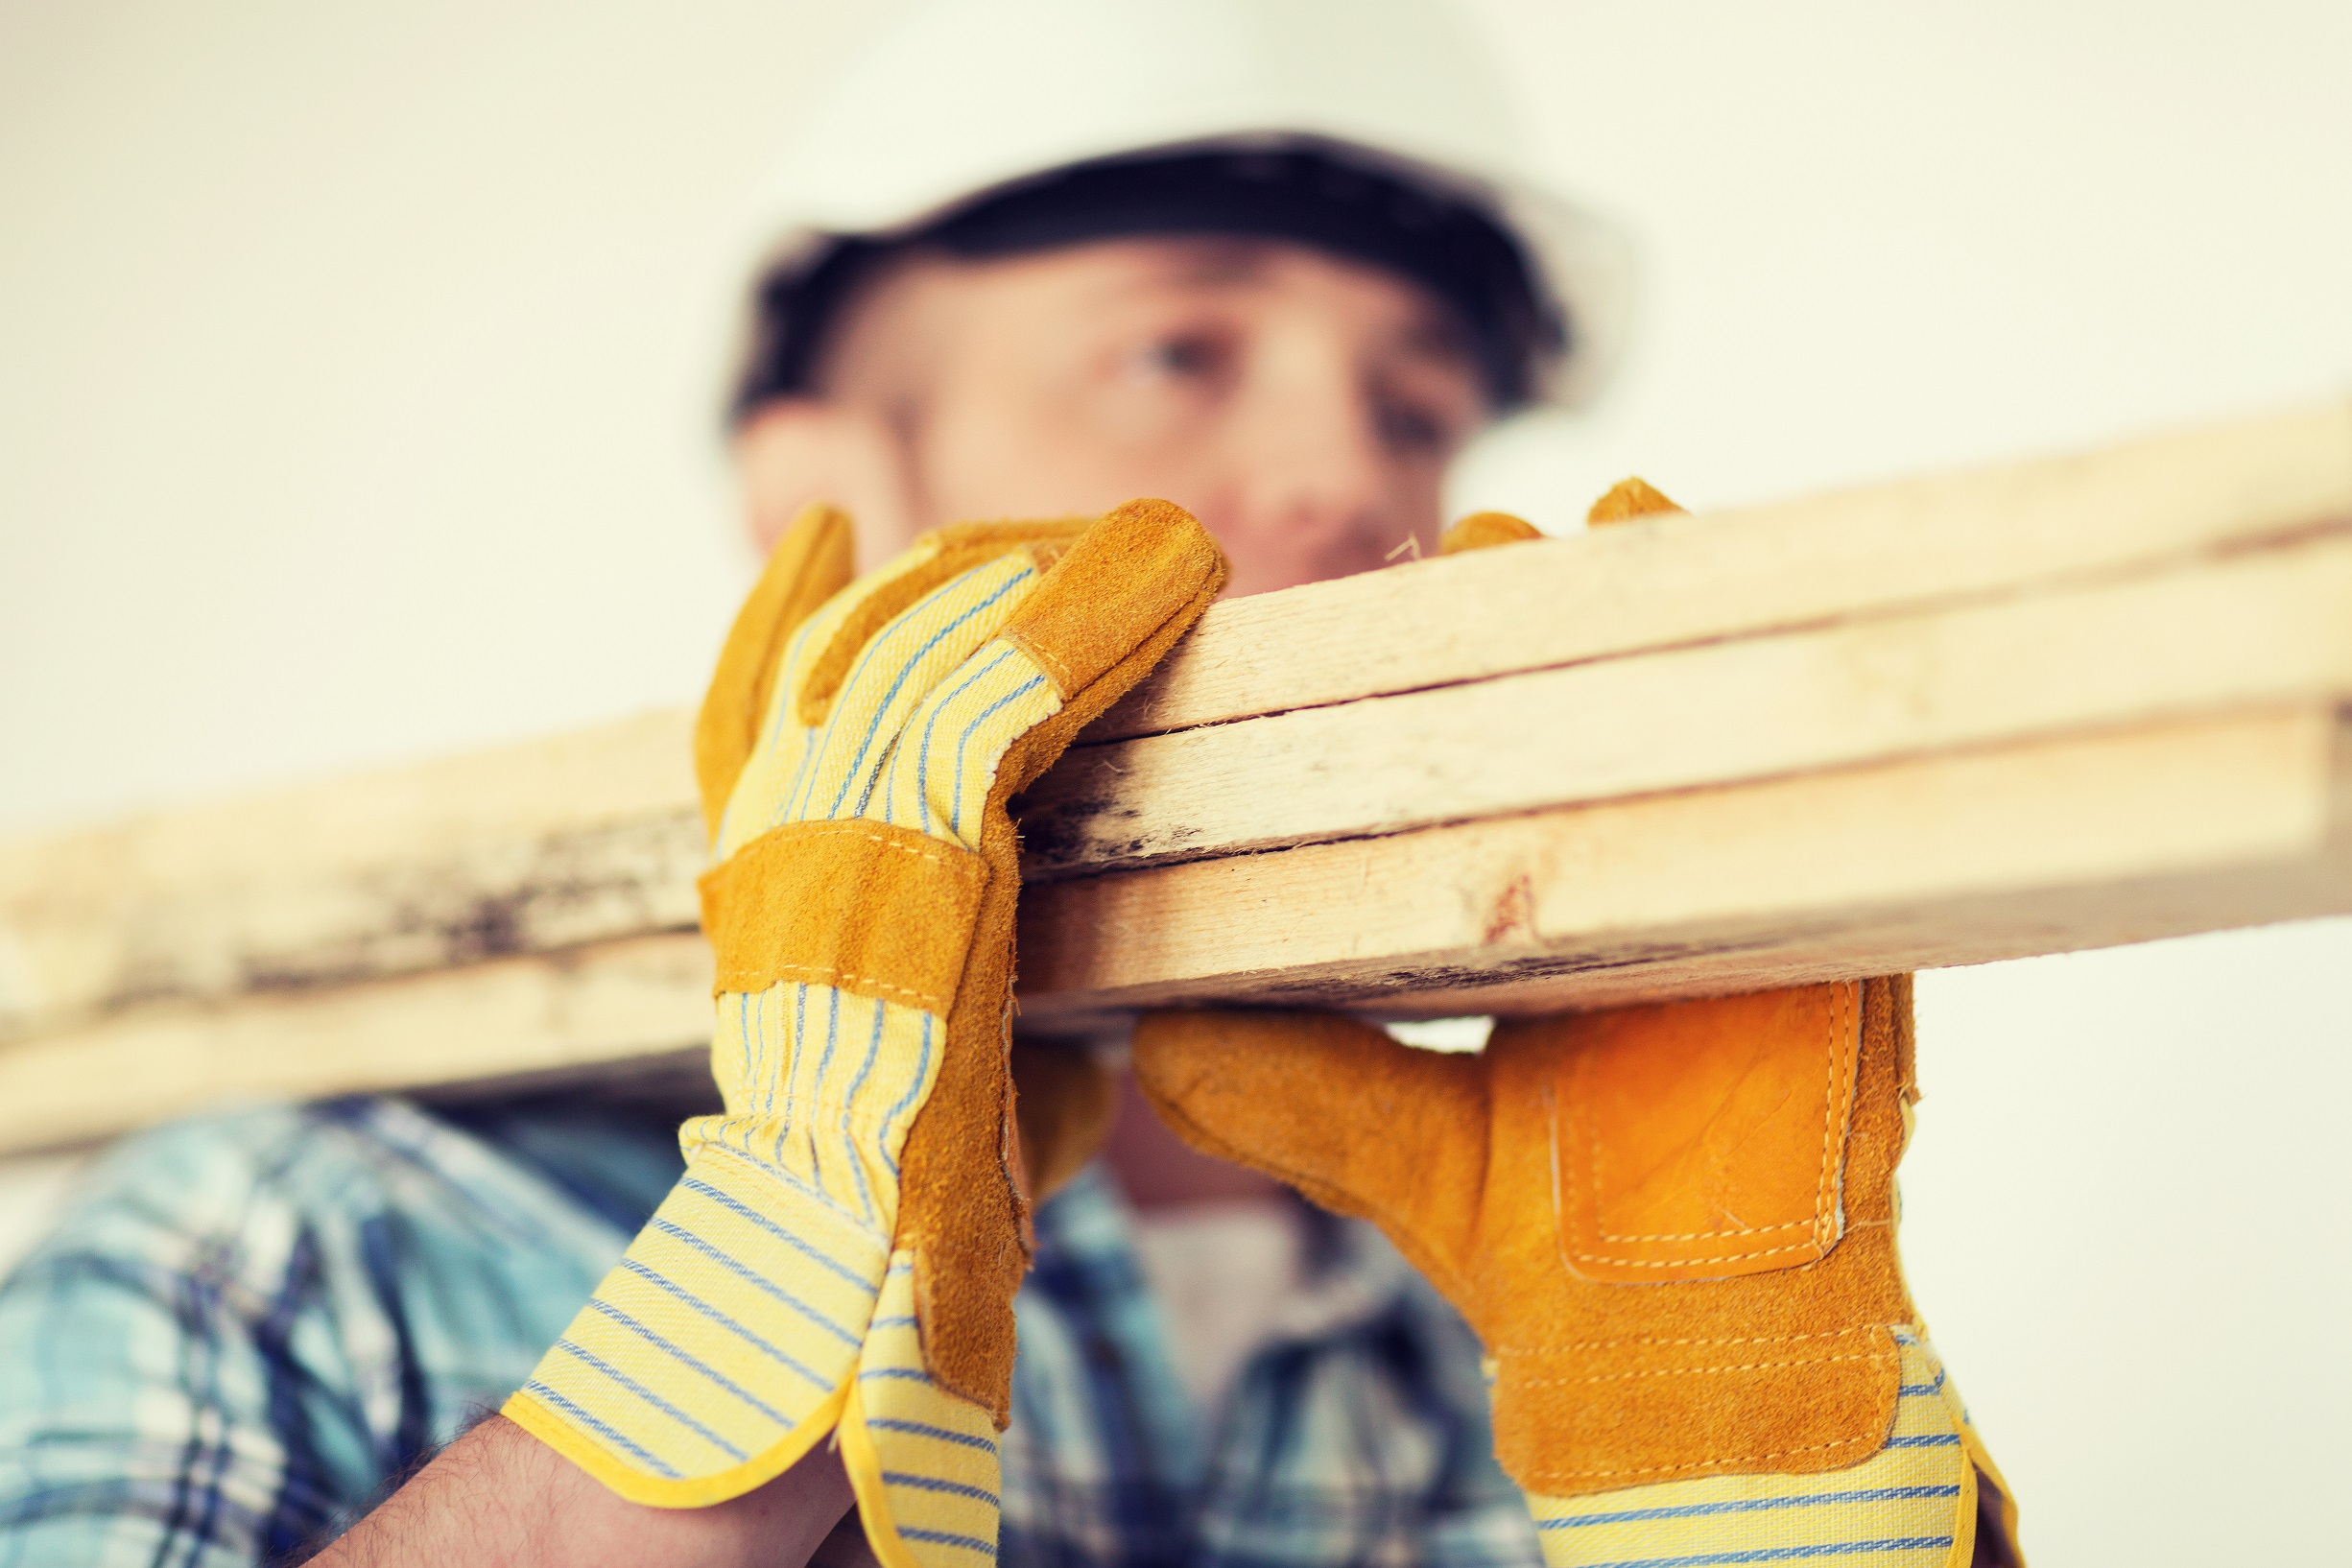 Construction worker holding wood with gloves on